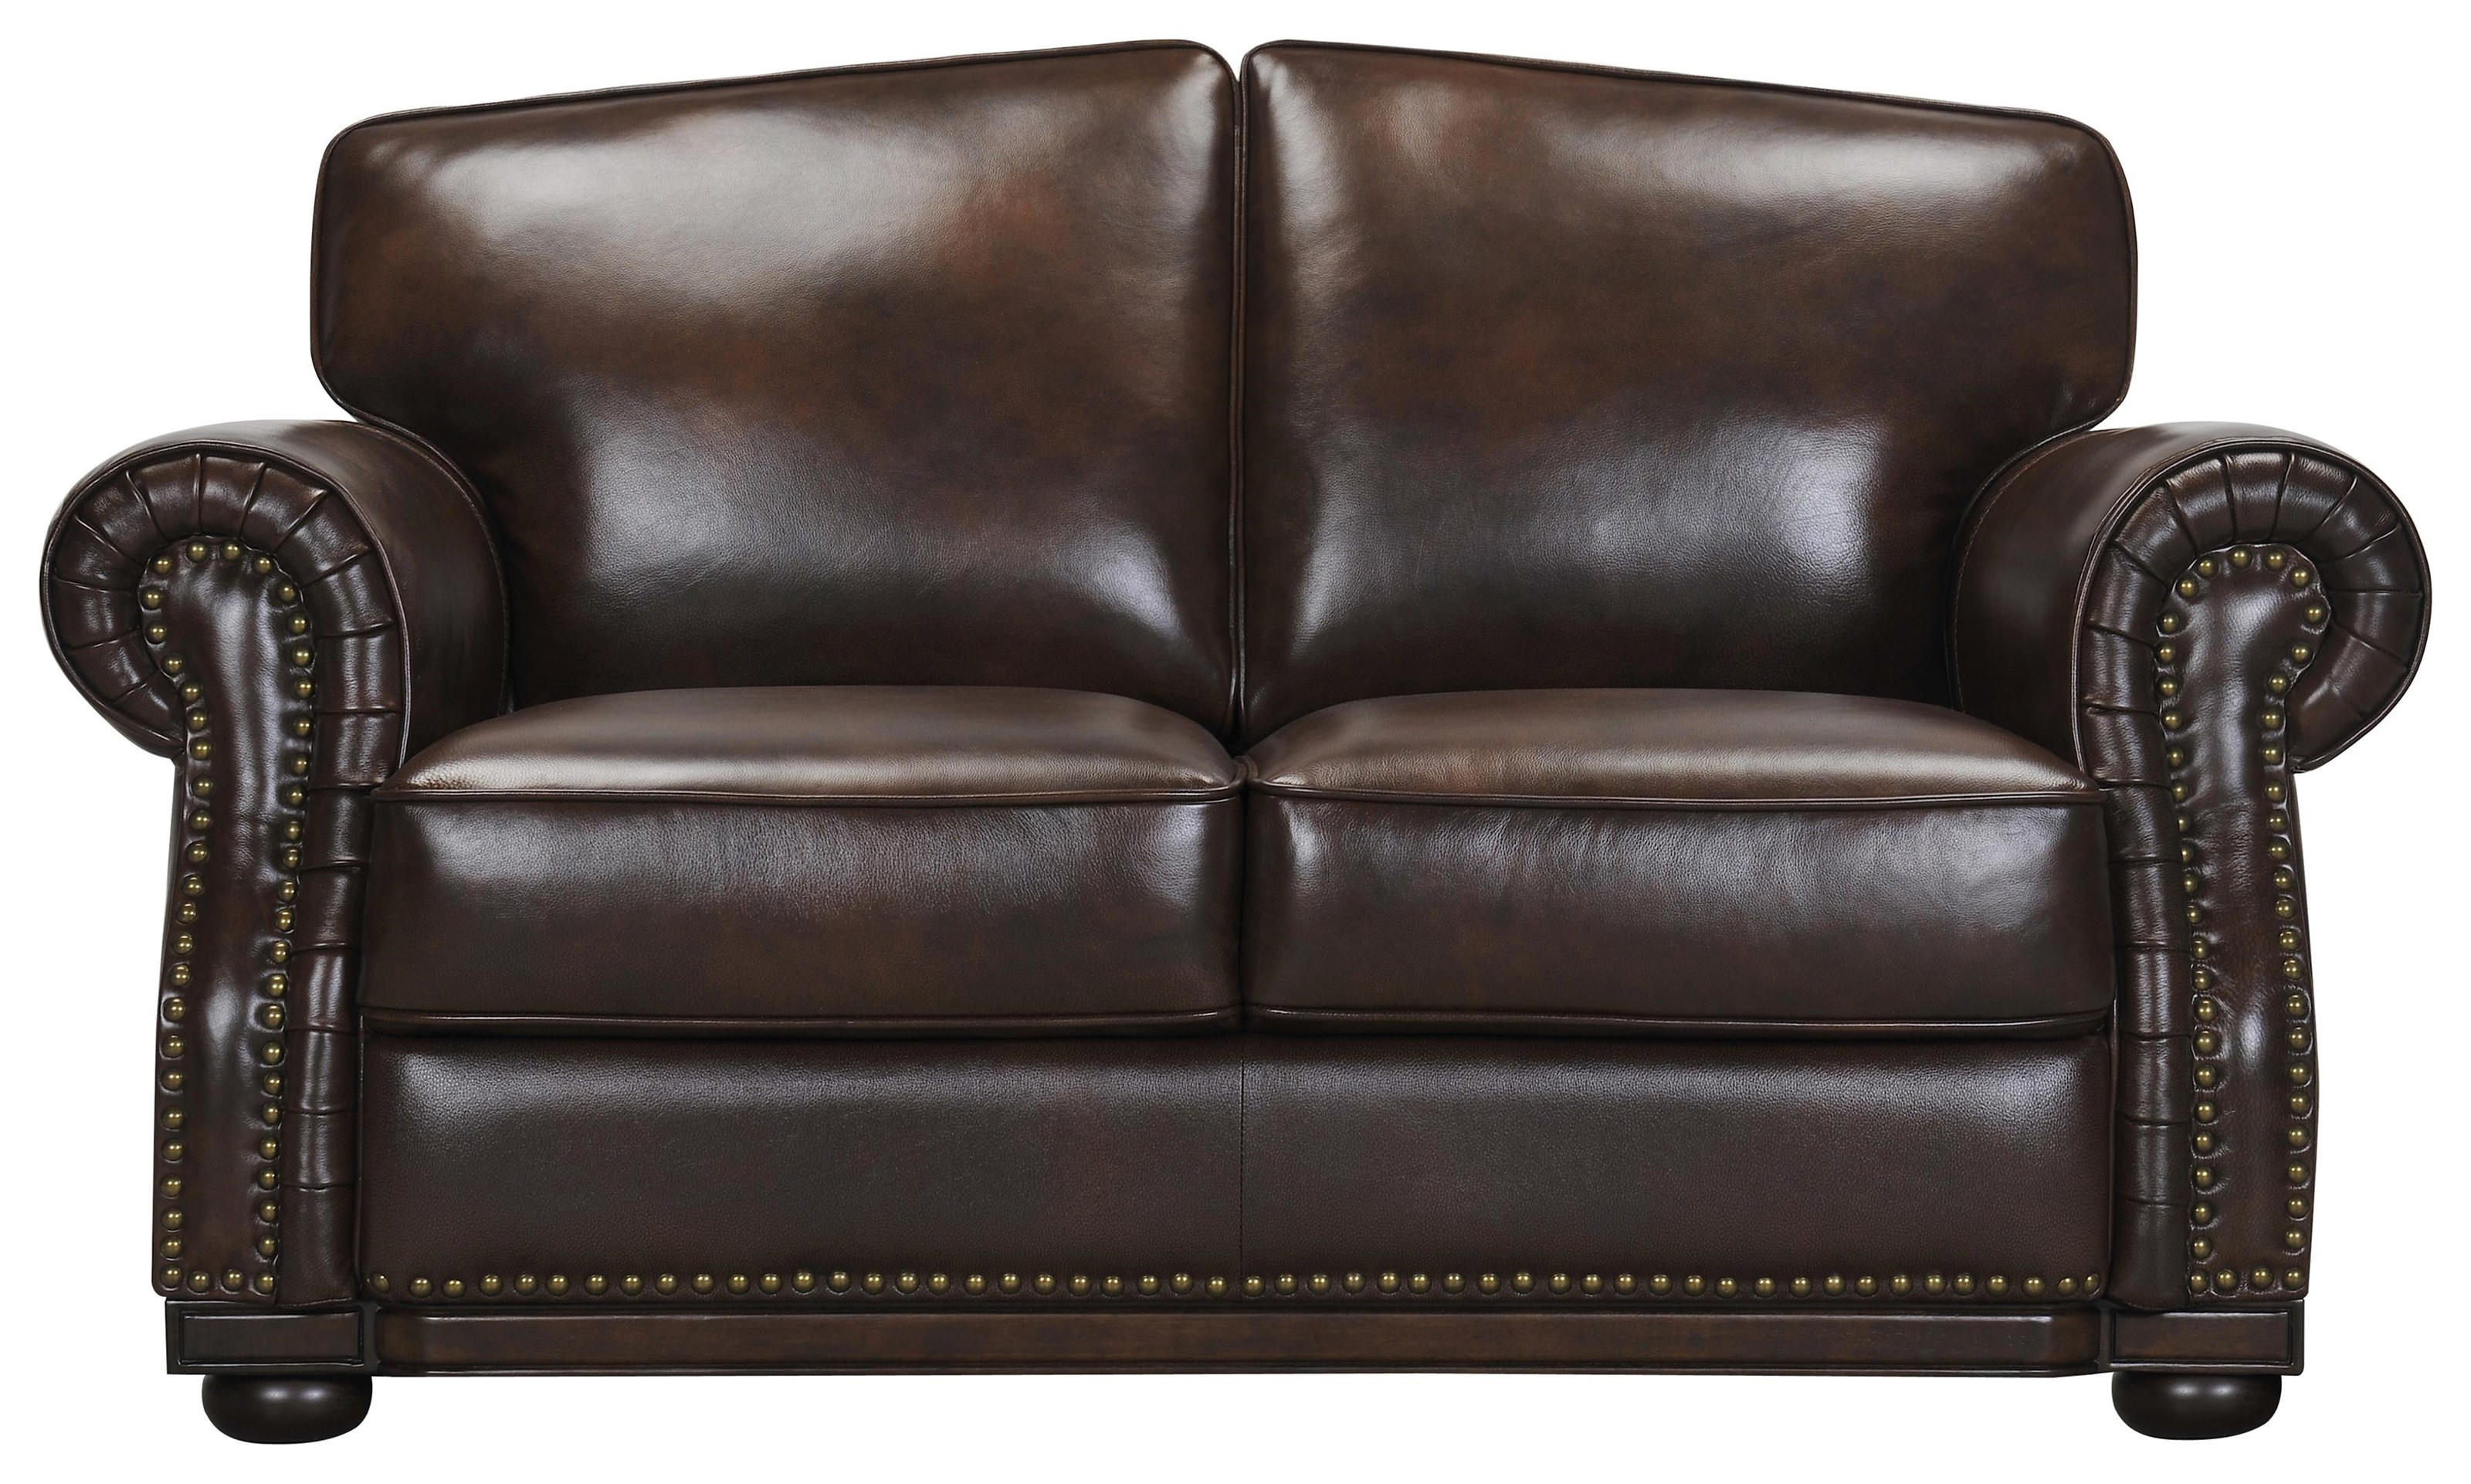 3110 Leather Match Loveseat by Violino at Darvin Furniture